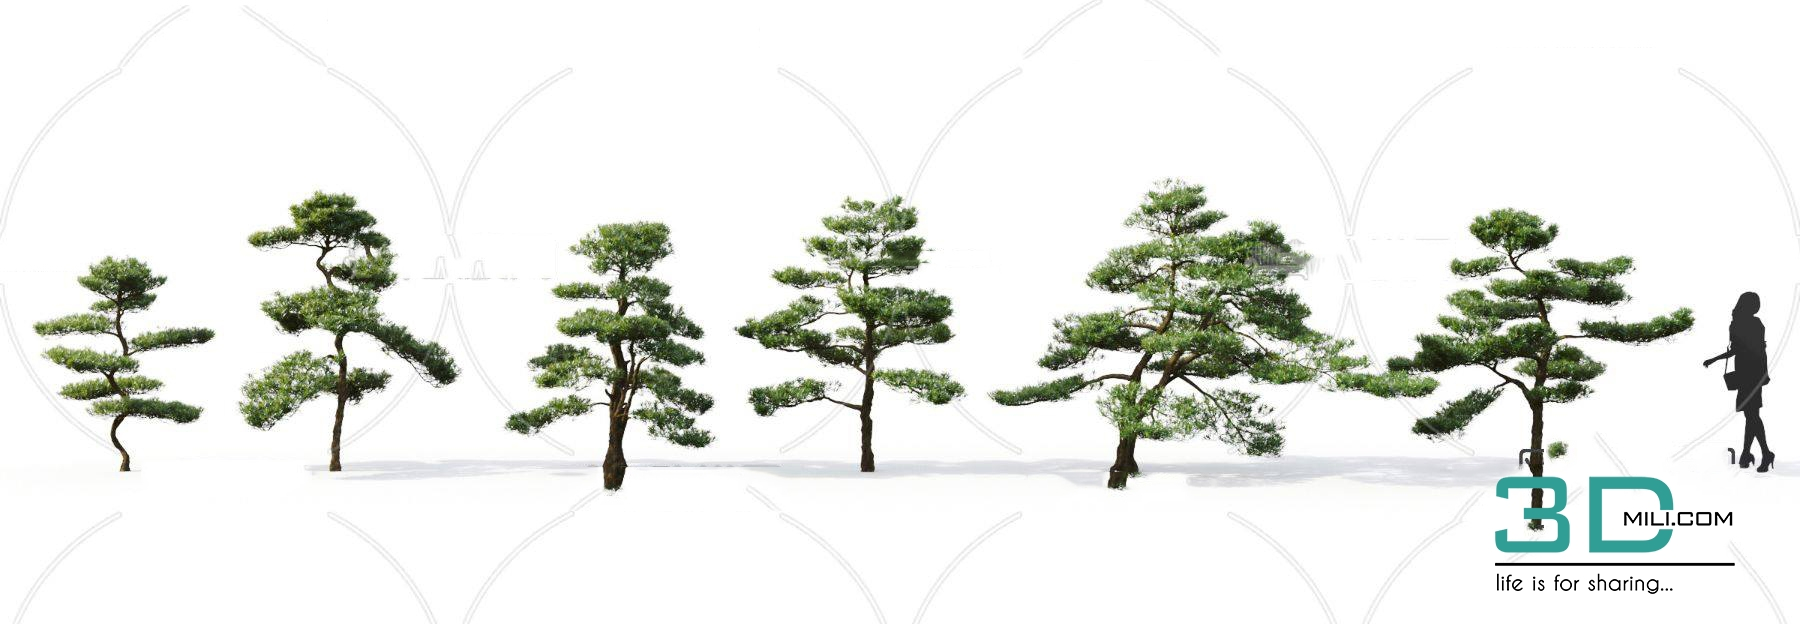 69  Bonsai Tree 3dsmax File Free Download - 3D Mili - Download 3D